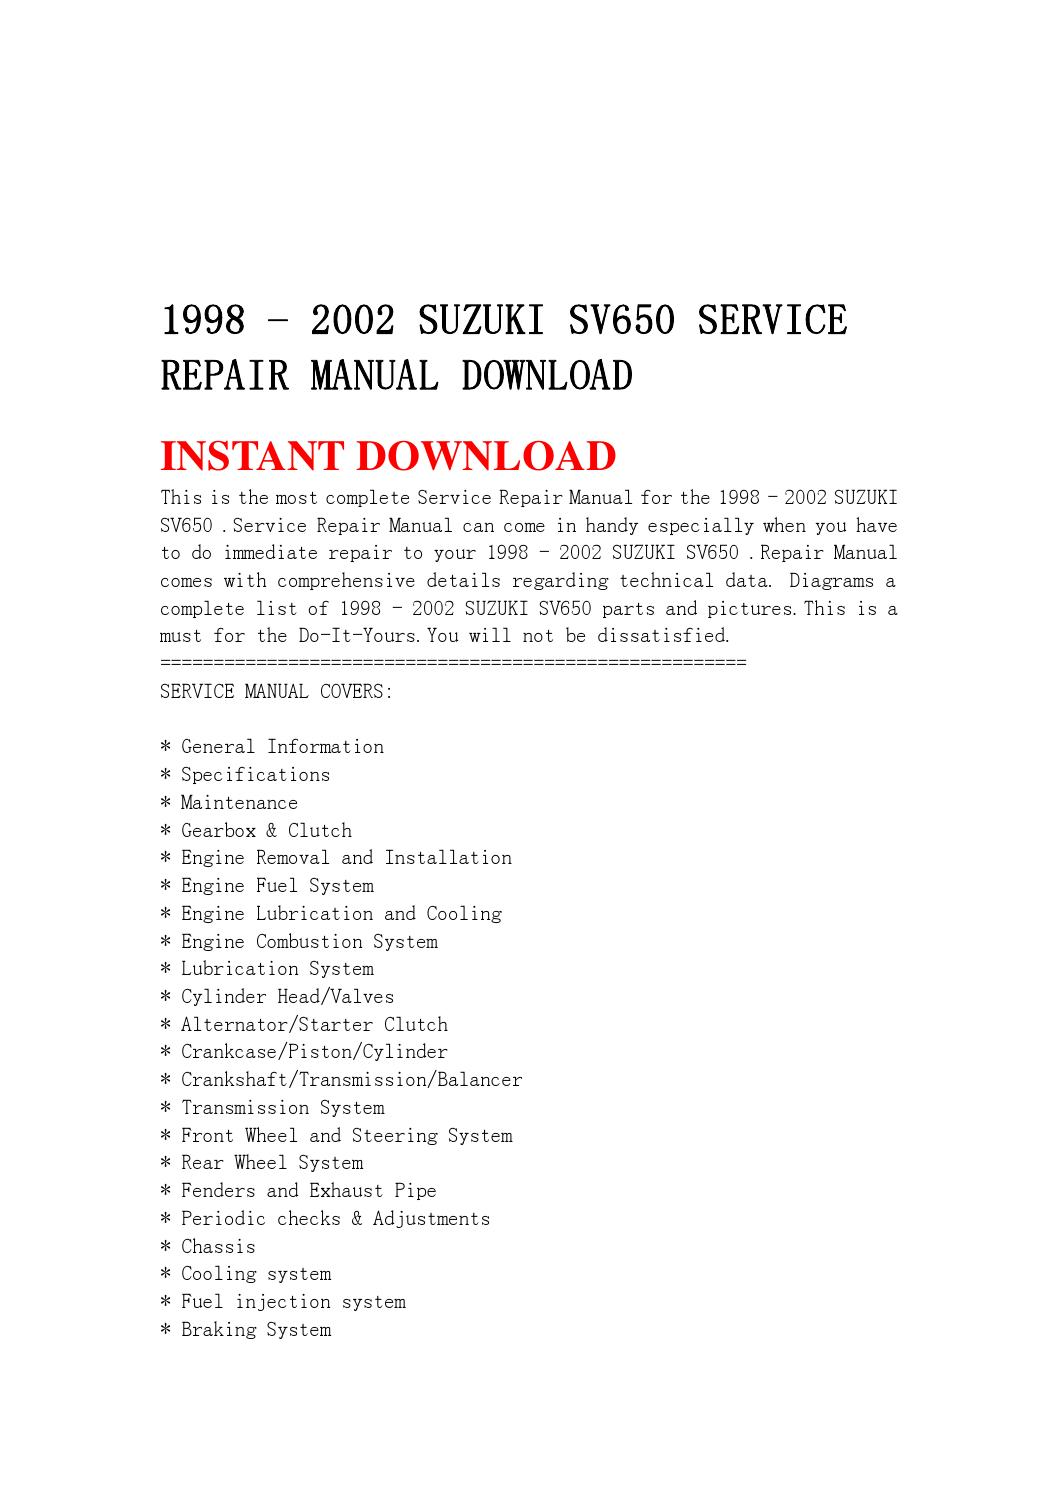 2002 sv650 wiring diagram how to home 1998 suzuki service repair manual download by